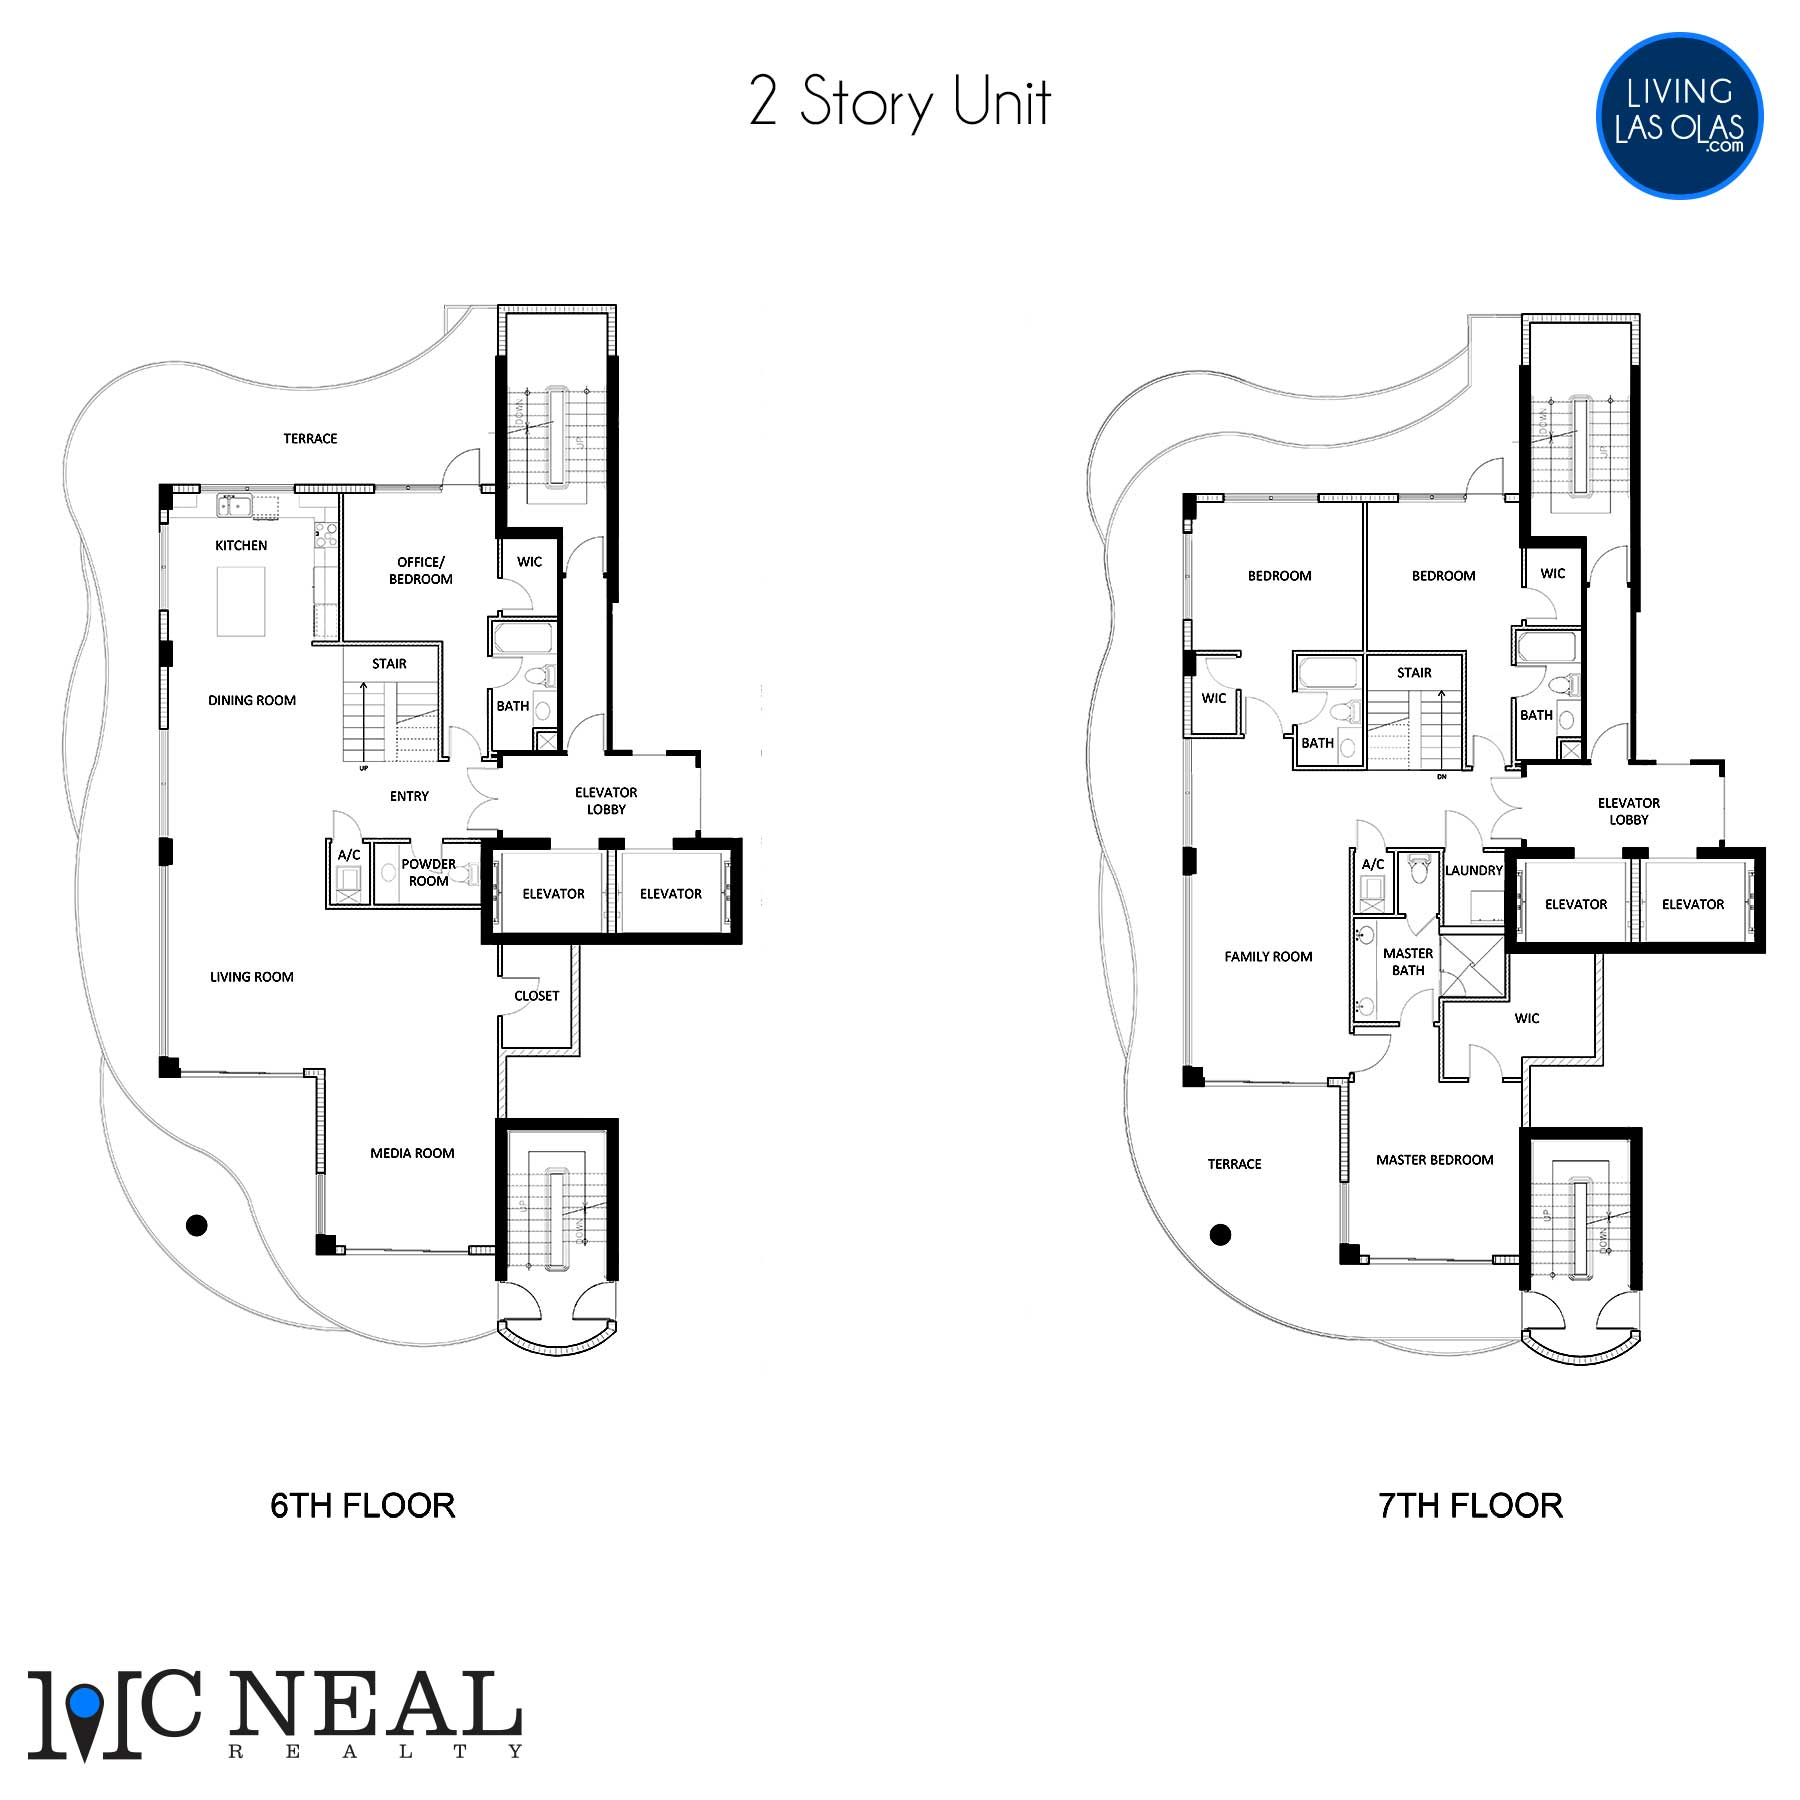 The Wave On Bayshore Floor Plan 601-701 2 Story Unit